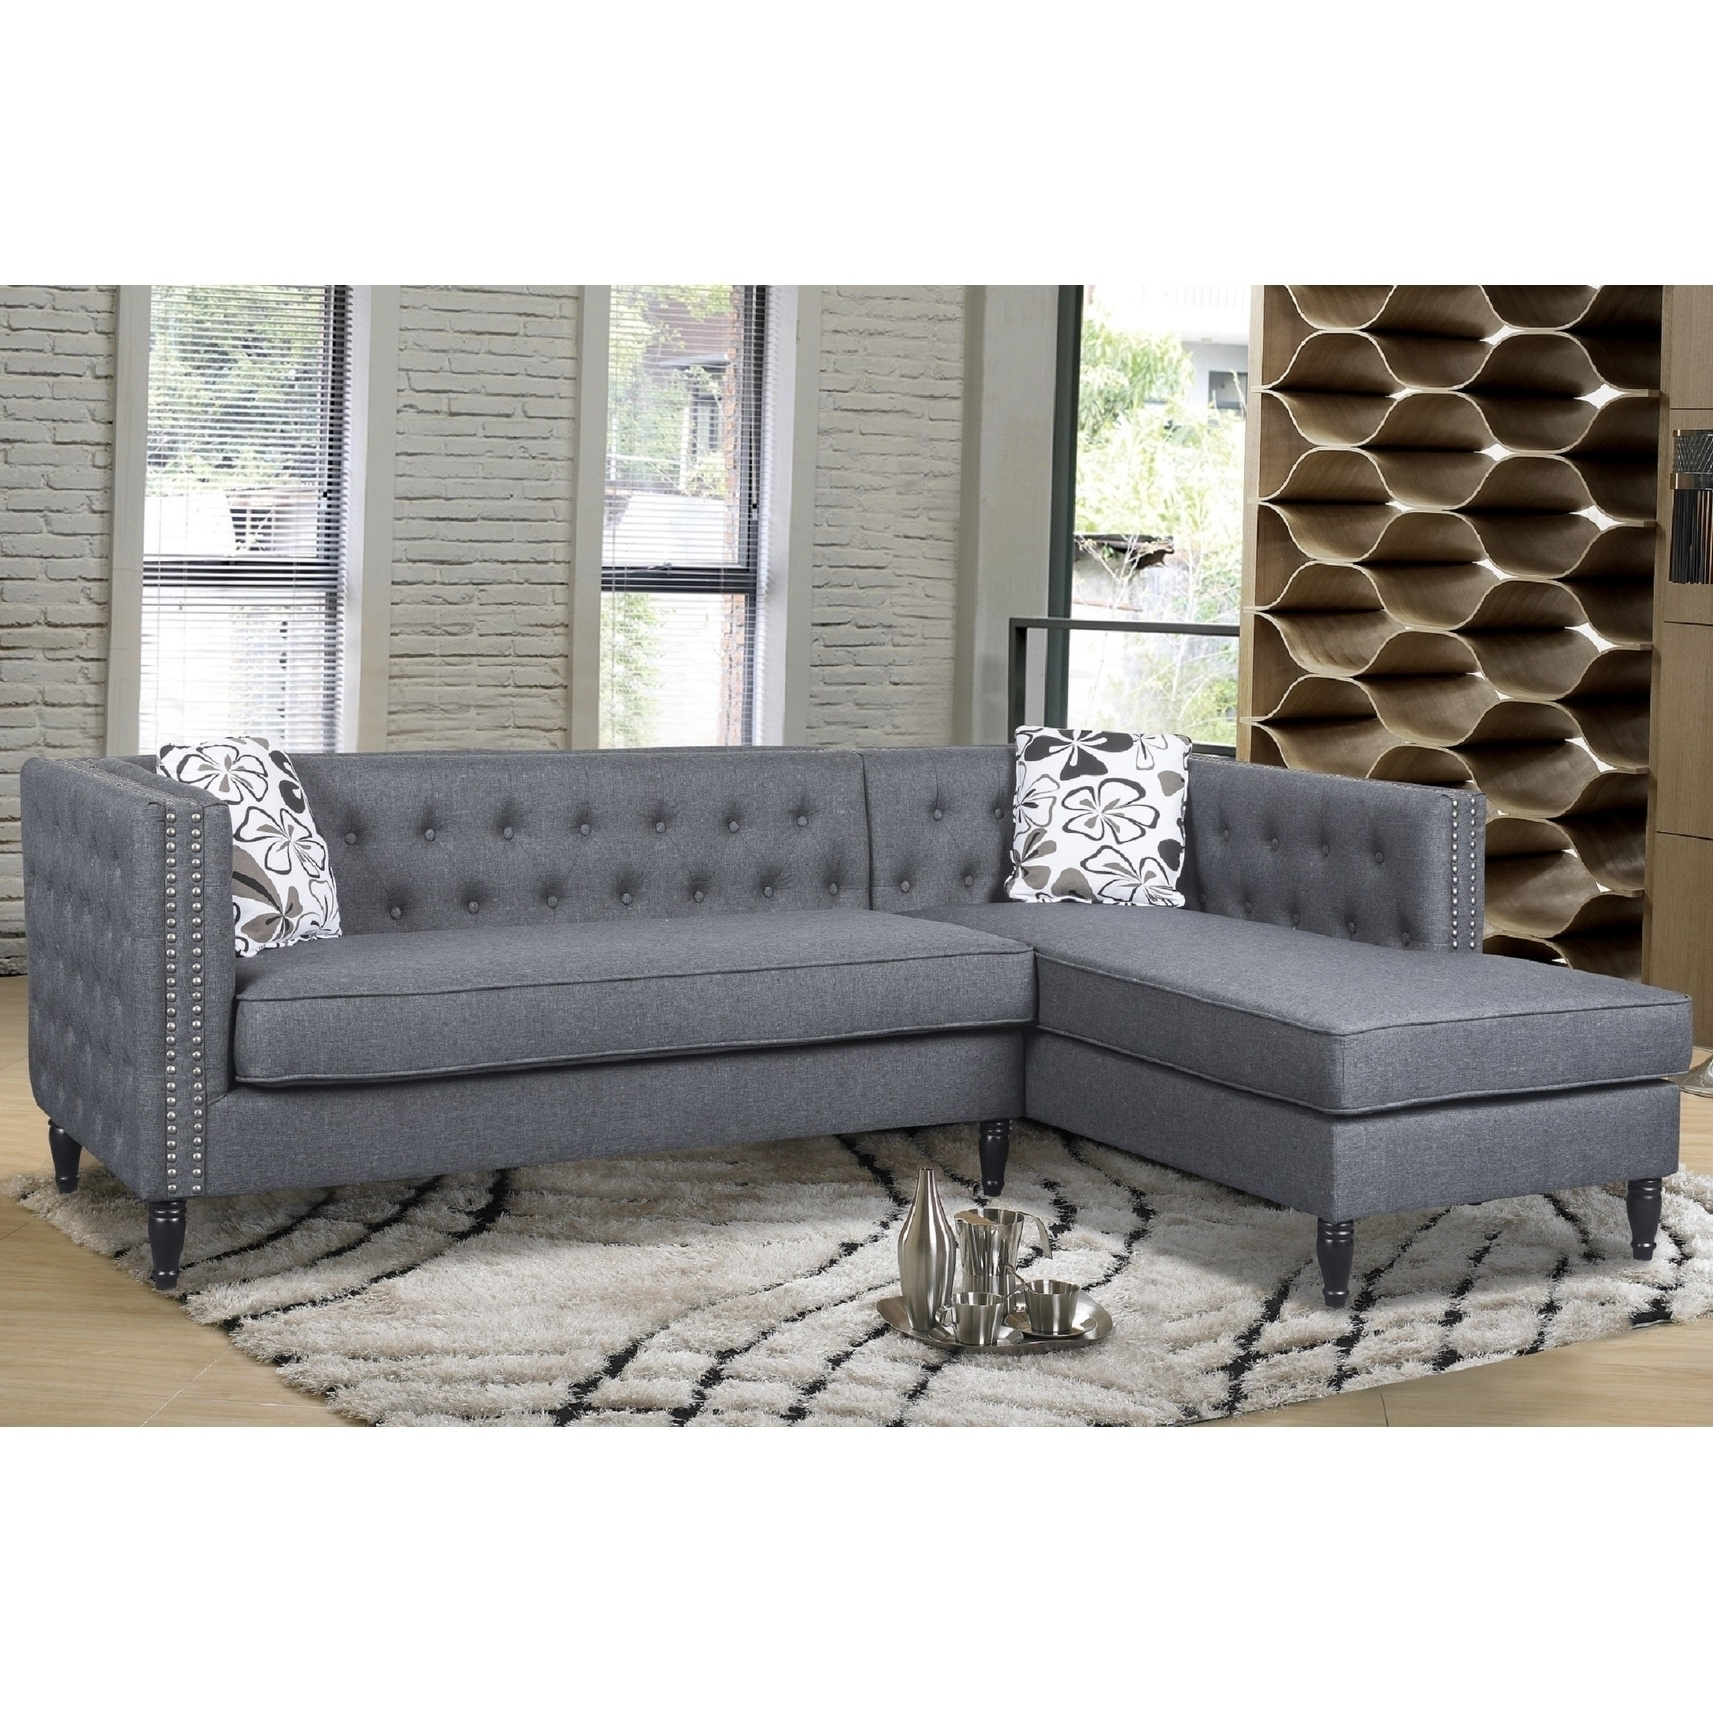 2018 Sectional Sofas With Nailhead Trim With Annie Tufted Nailhead Trim Left Facing Sectional Sofa (View 16 of 20)